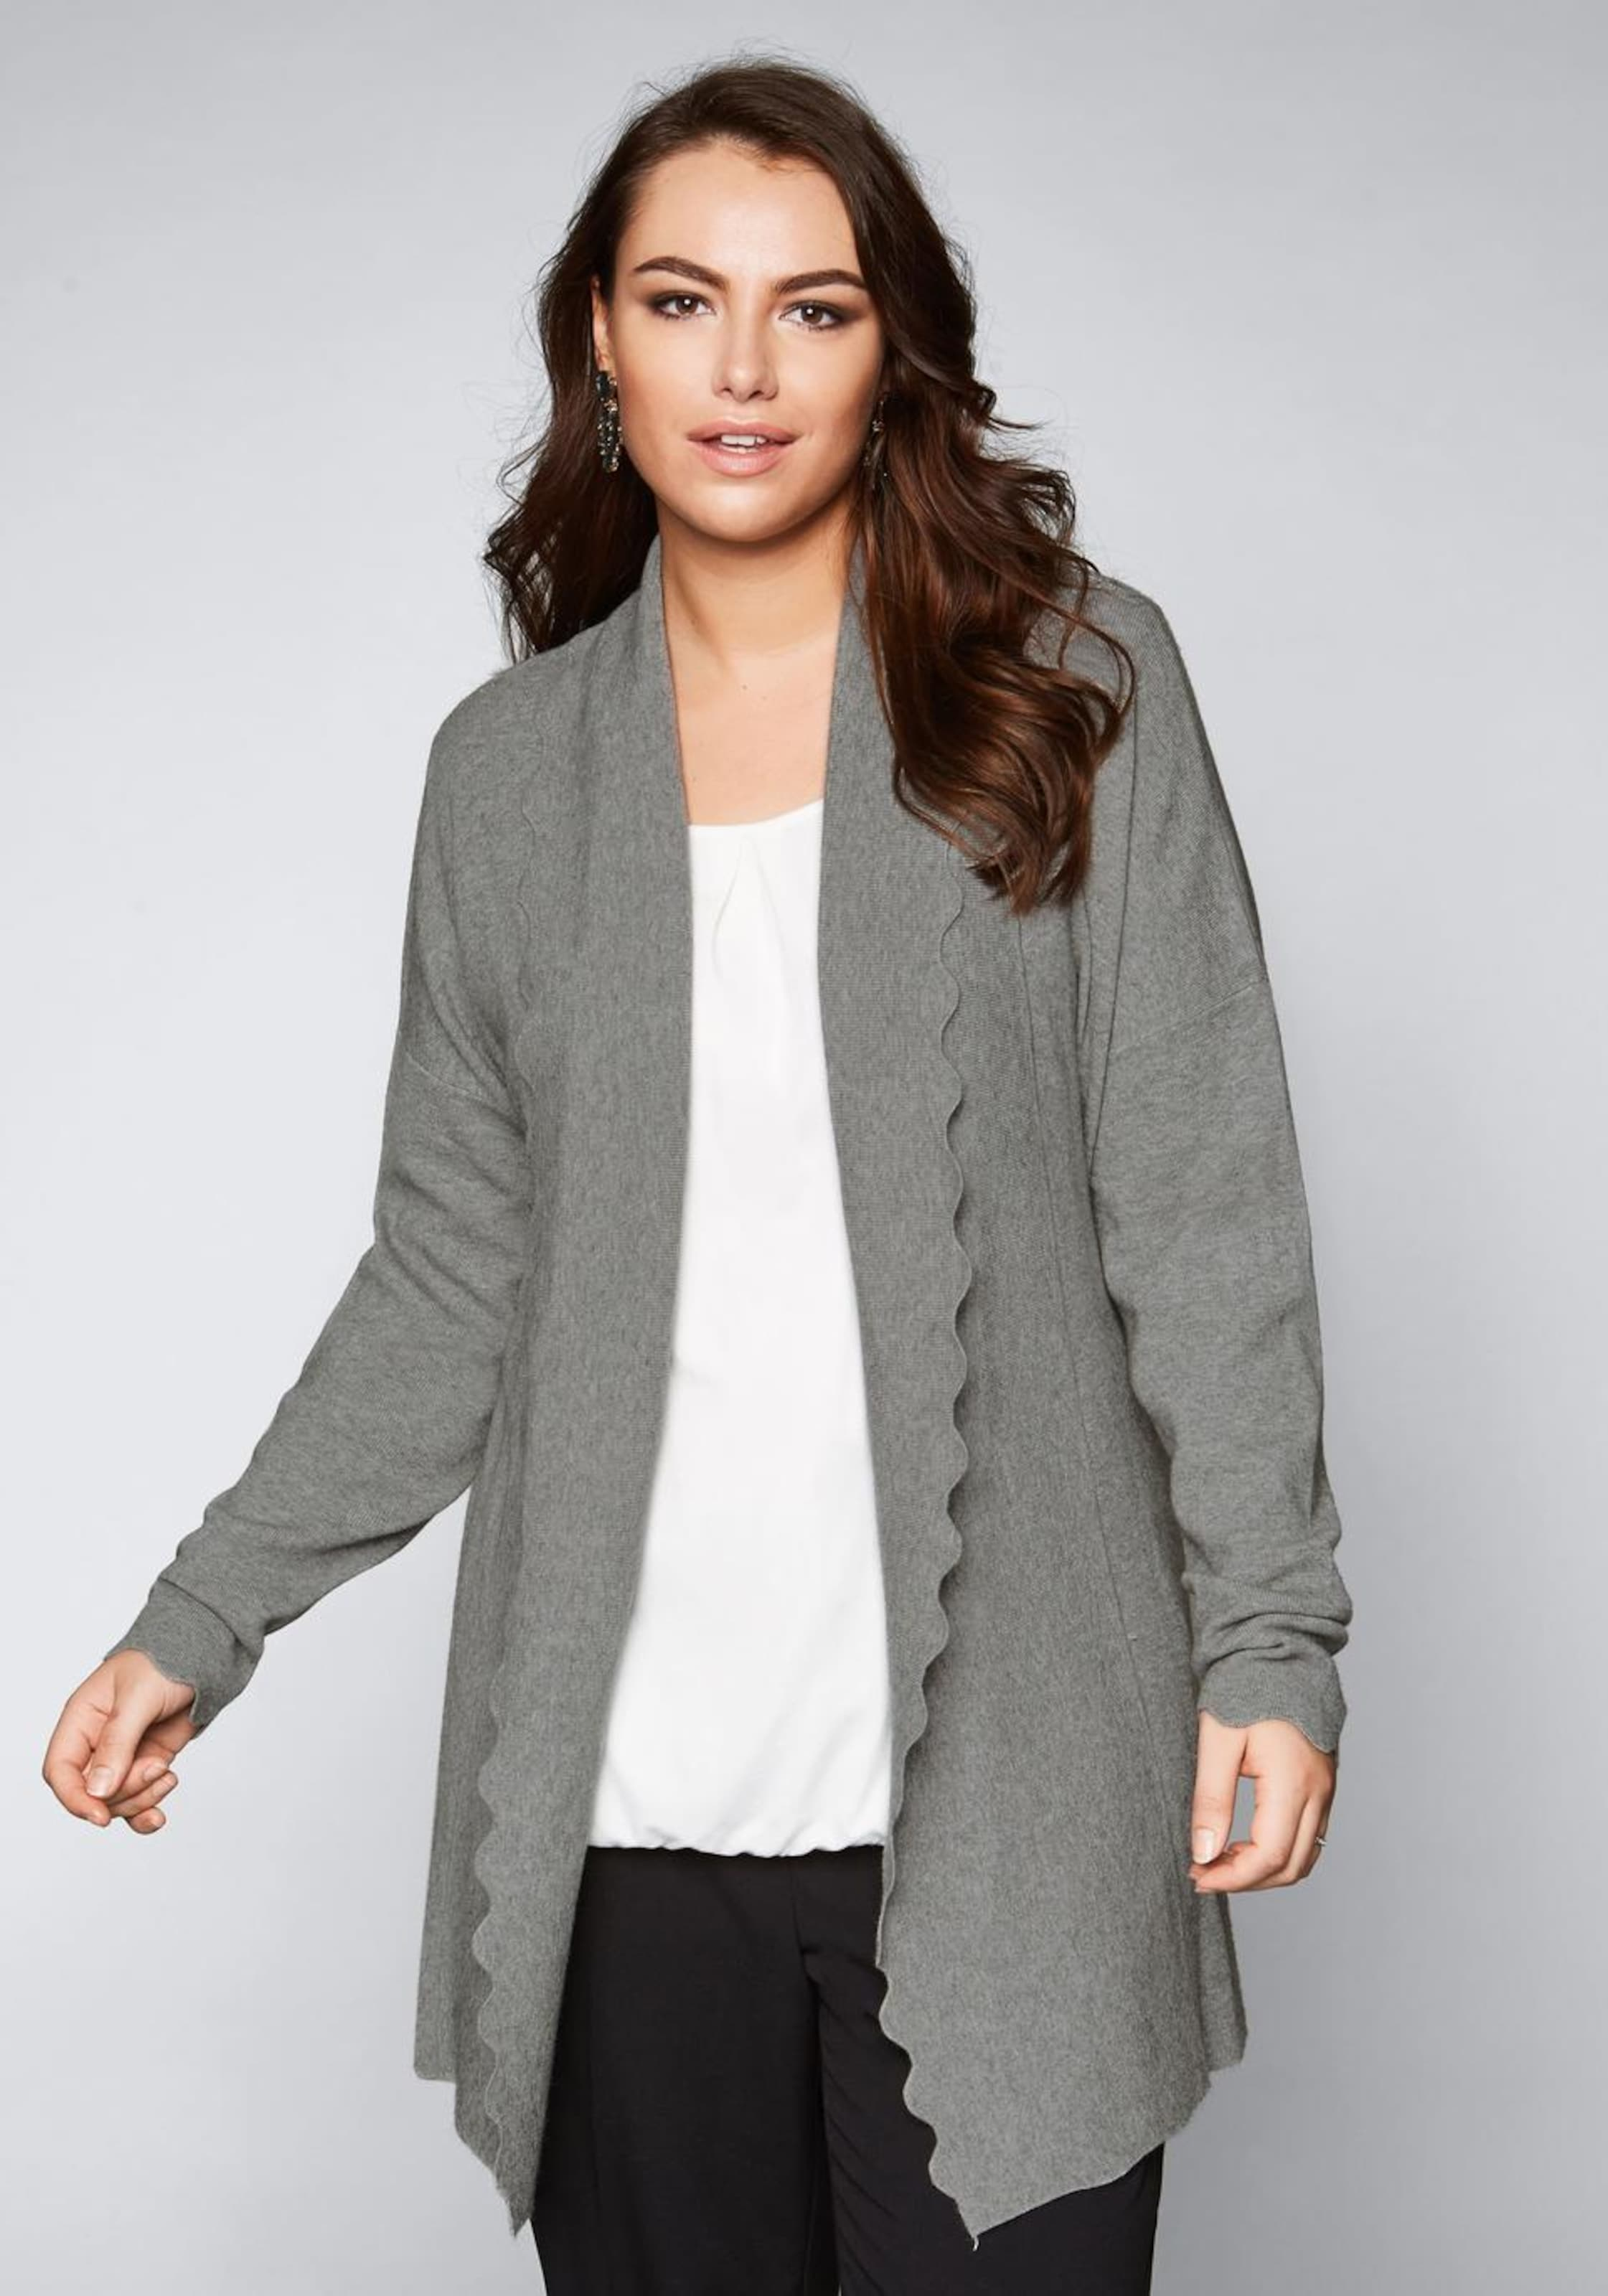 Sheego Strickjacke Graumeliert Sheego In Strickjacke Sheego Strickjacke In Graumeliert stQdCrh